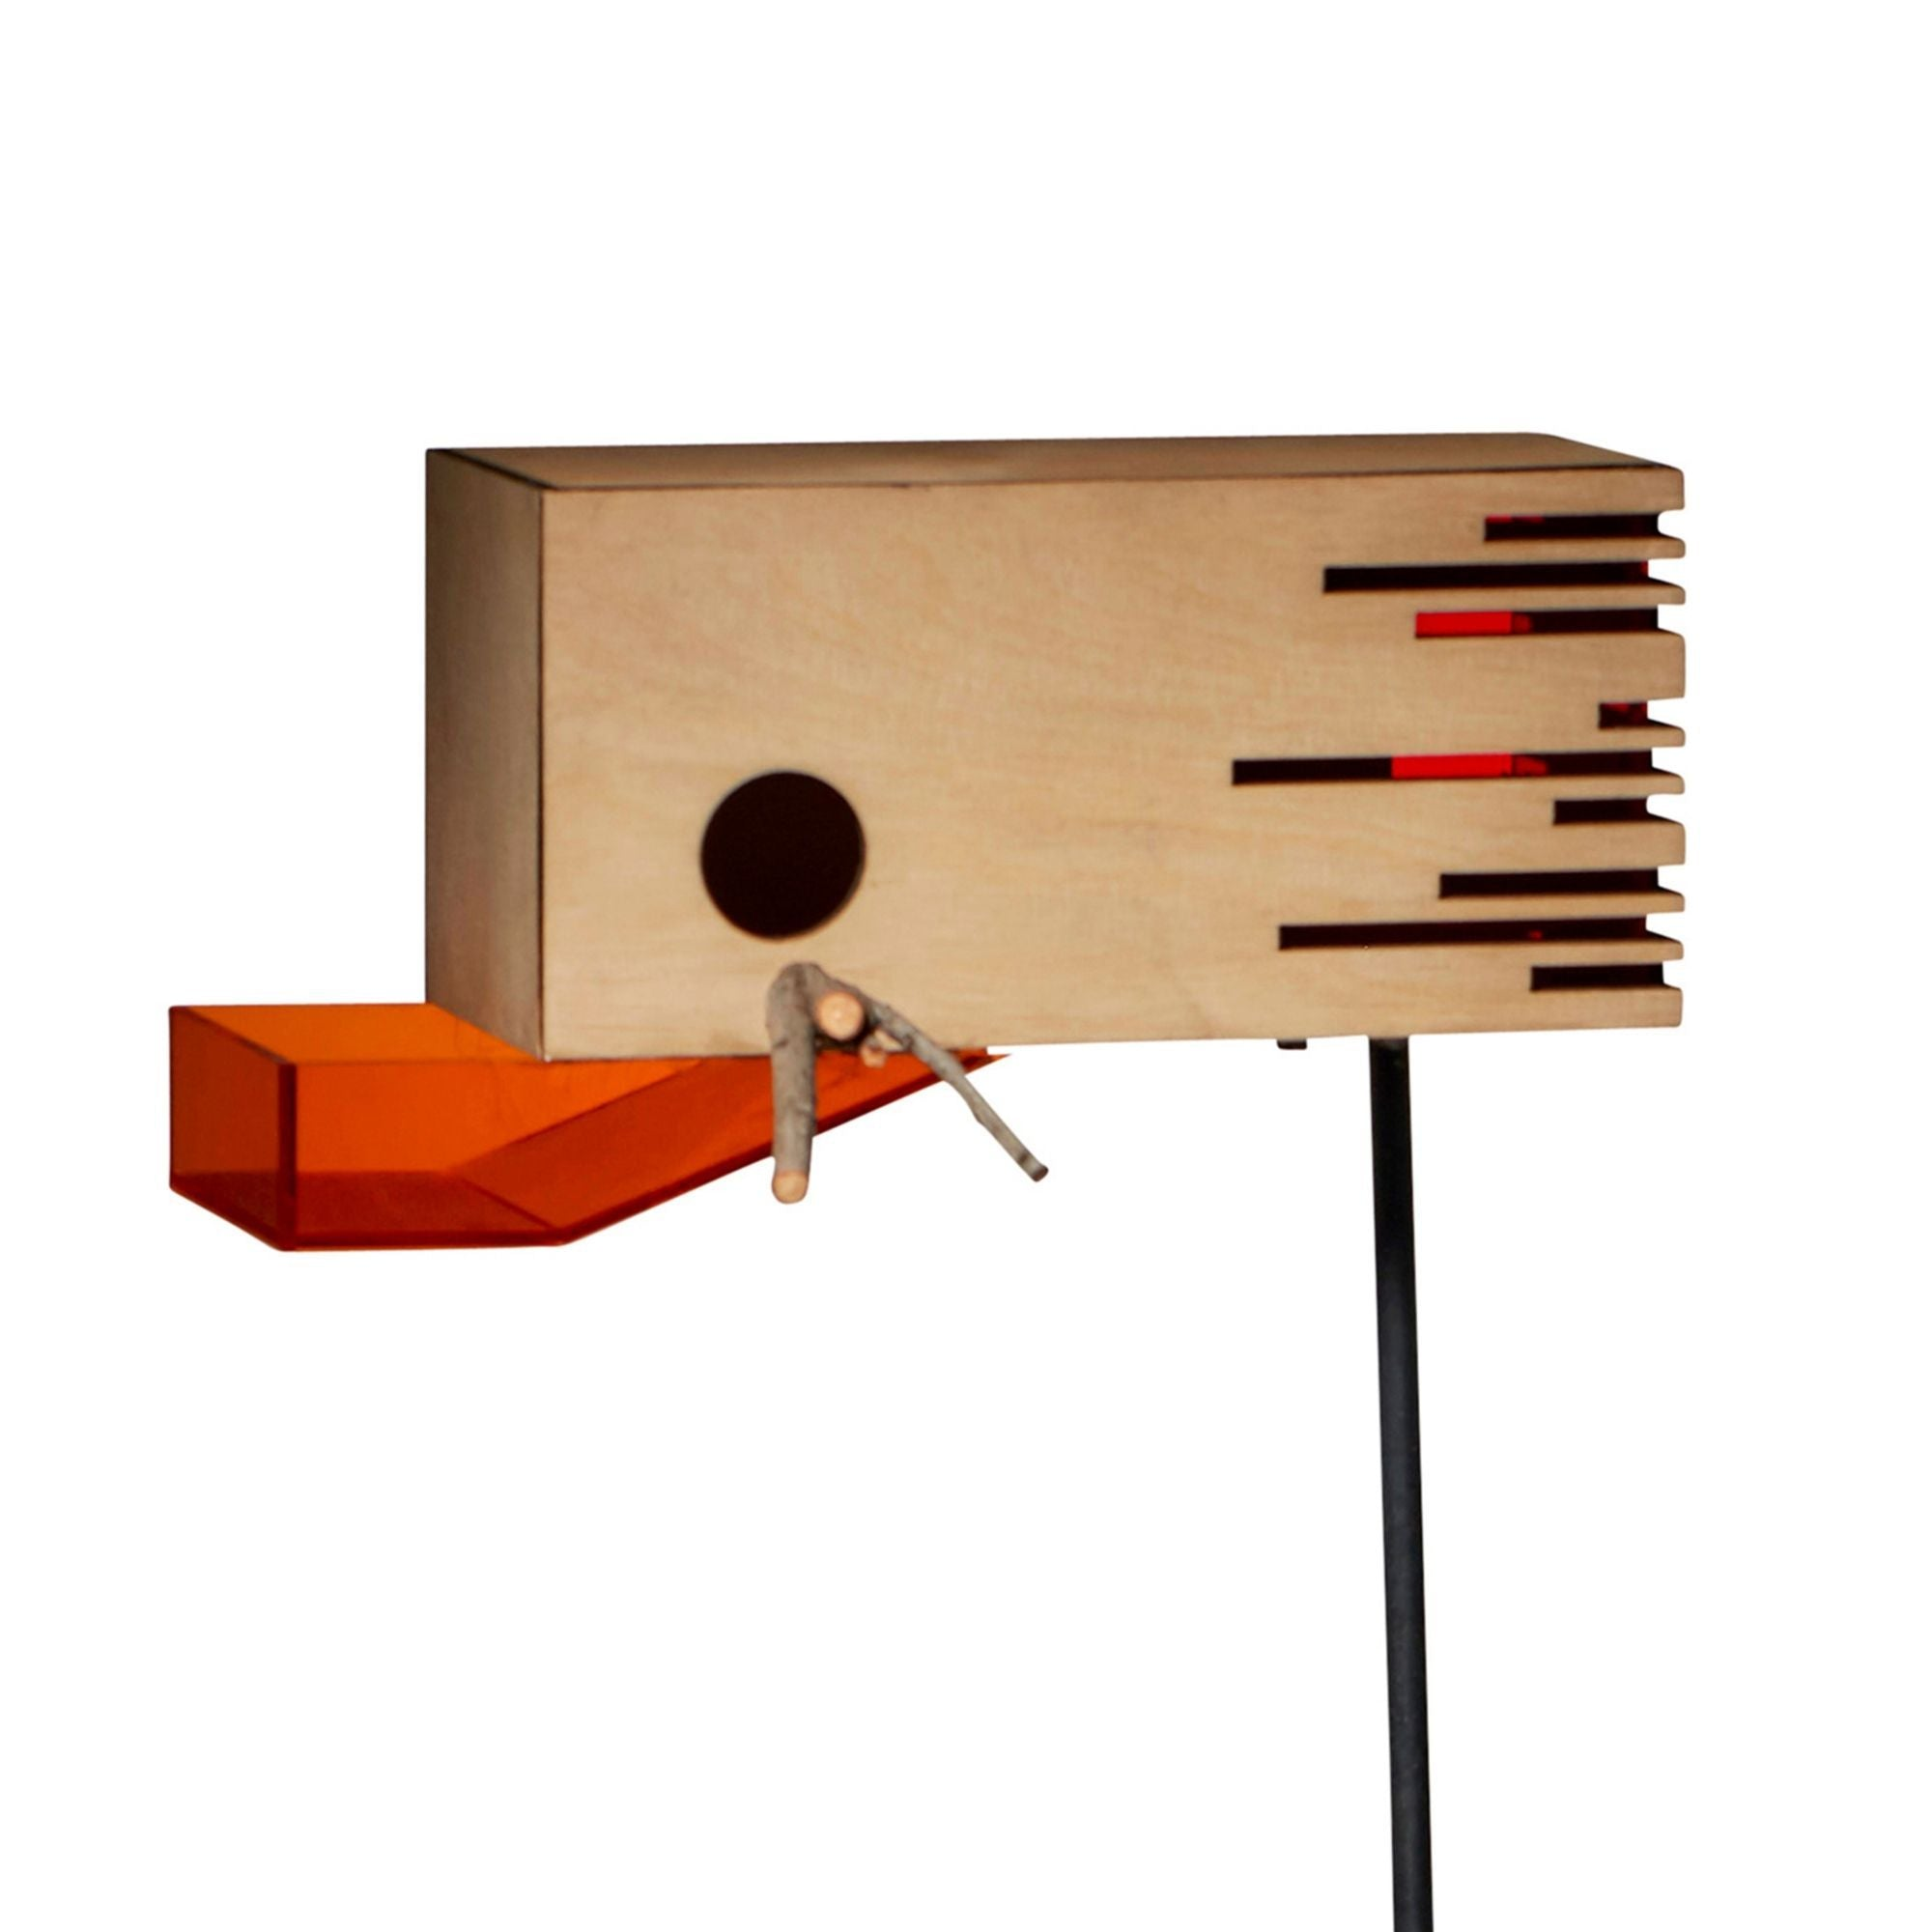 Modern Striped Bird Box - KNUS